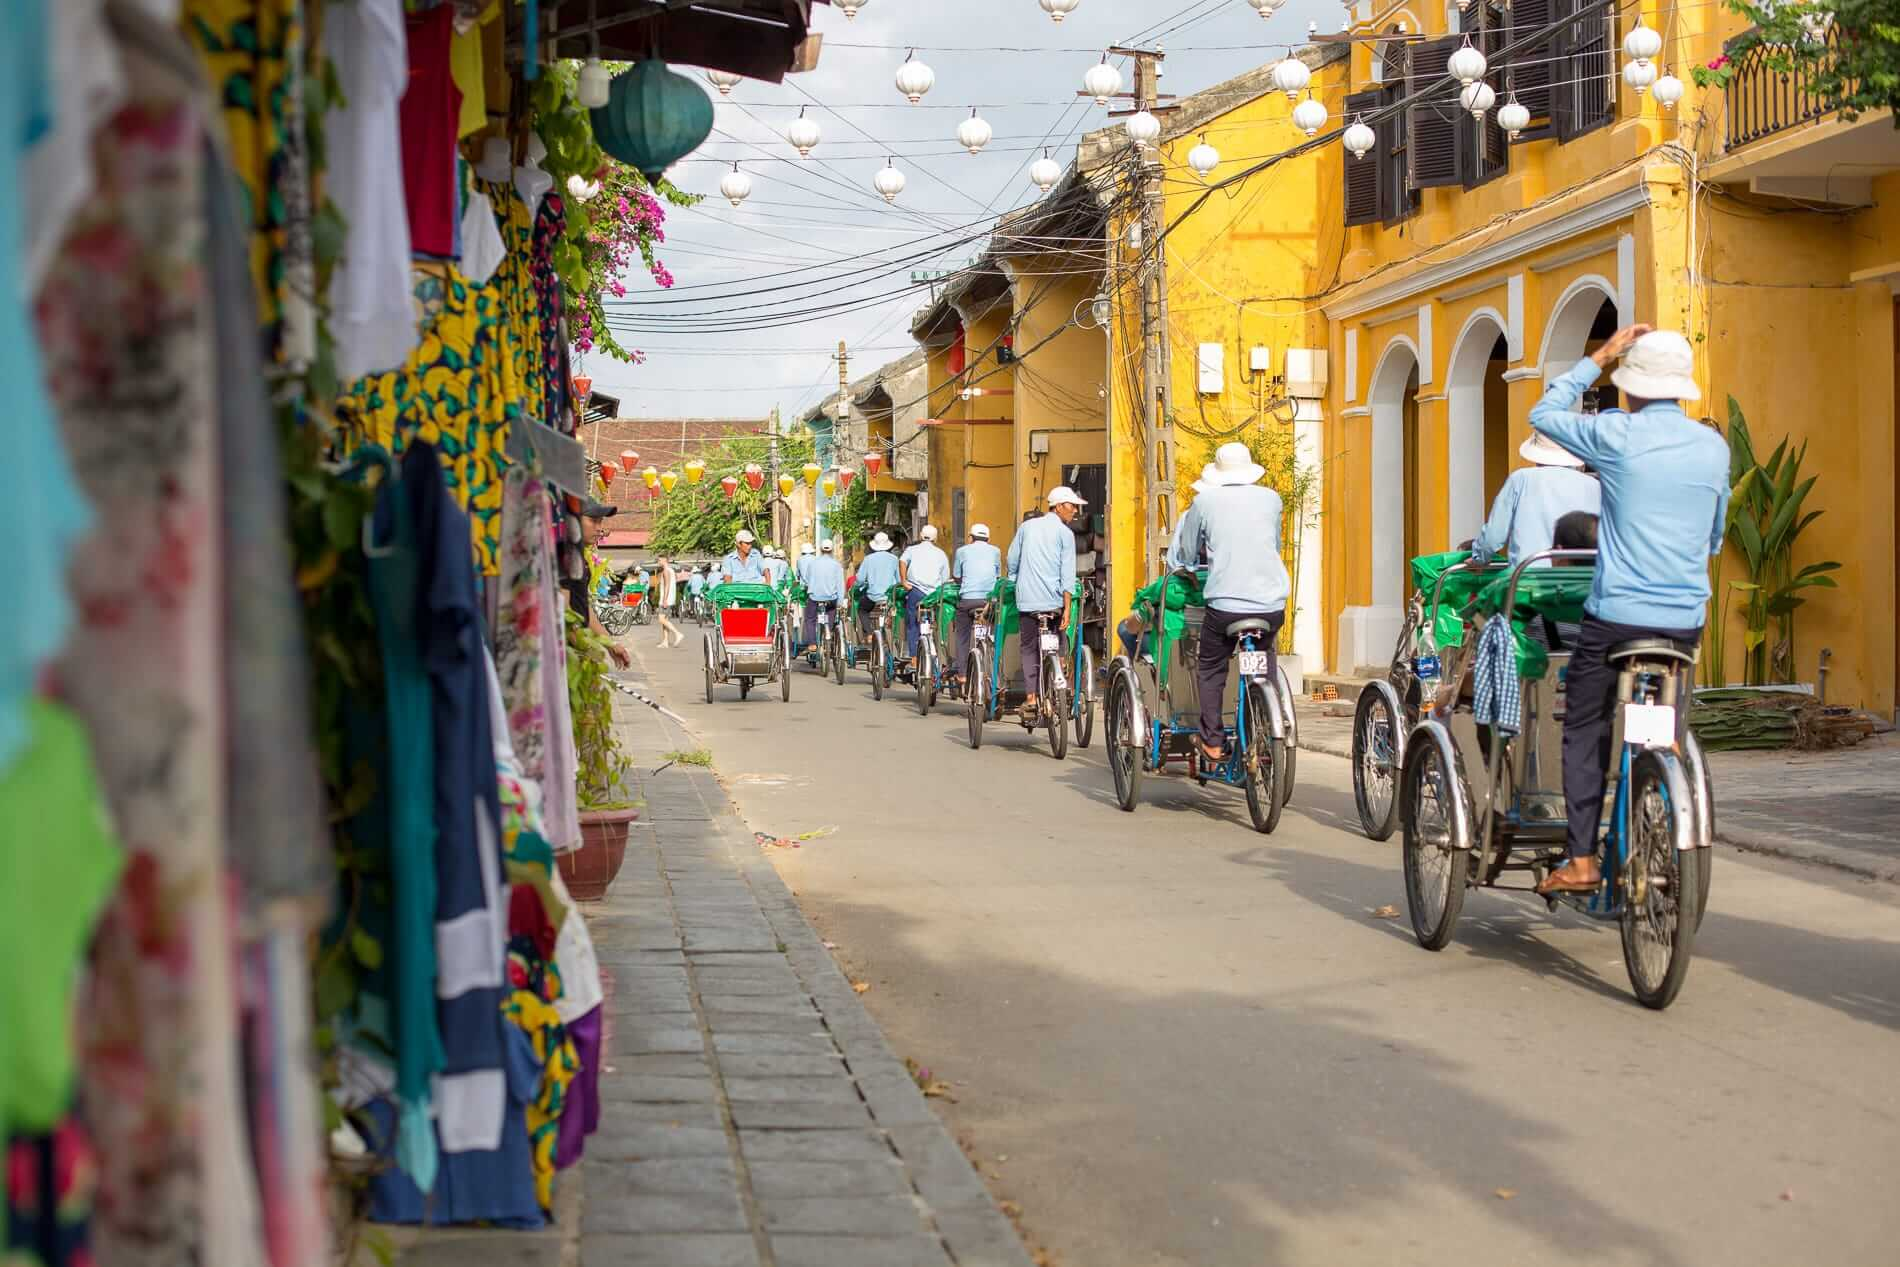 Cyclos cruise through Hoi An Old Town